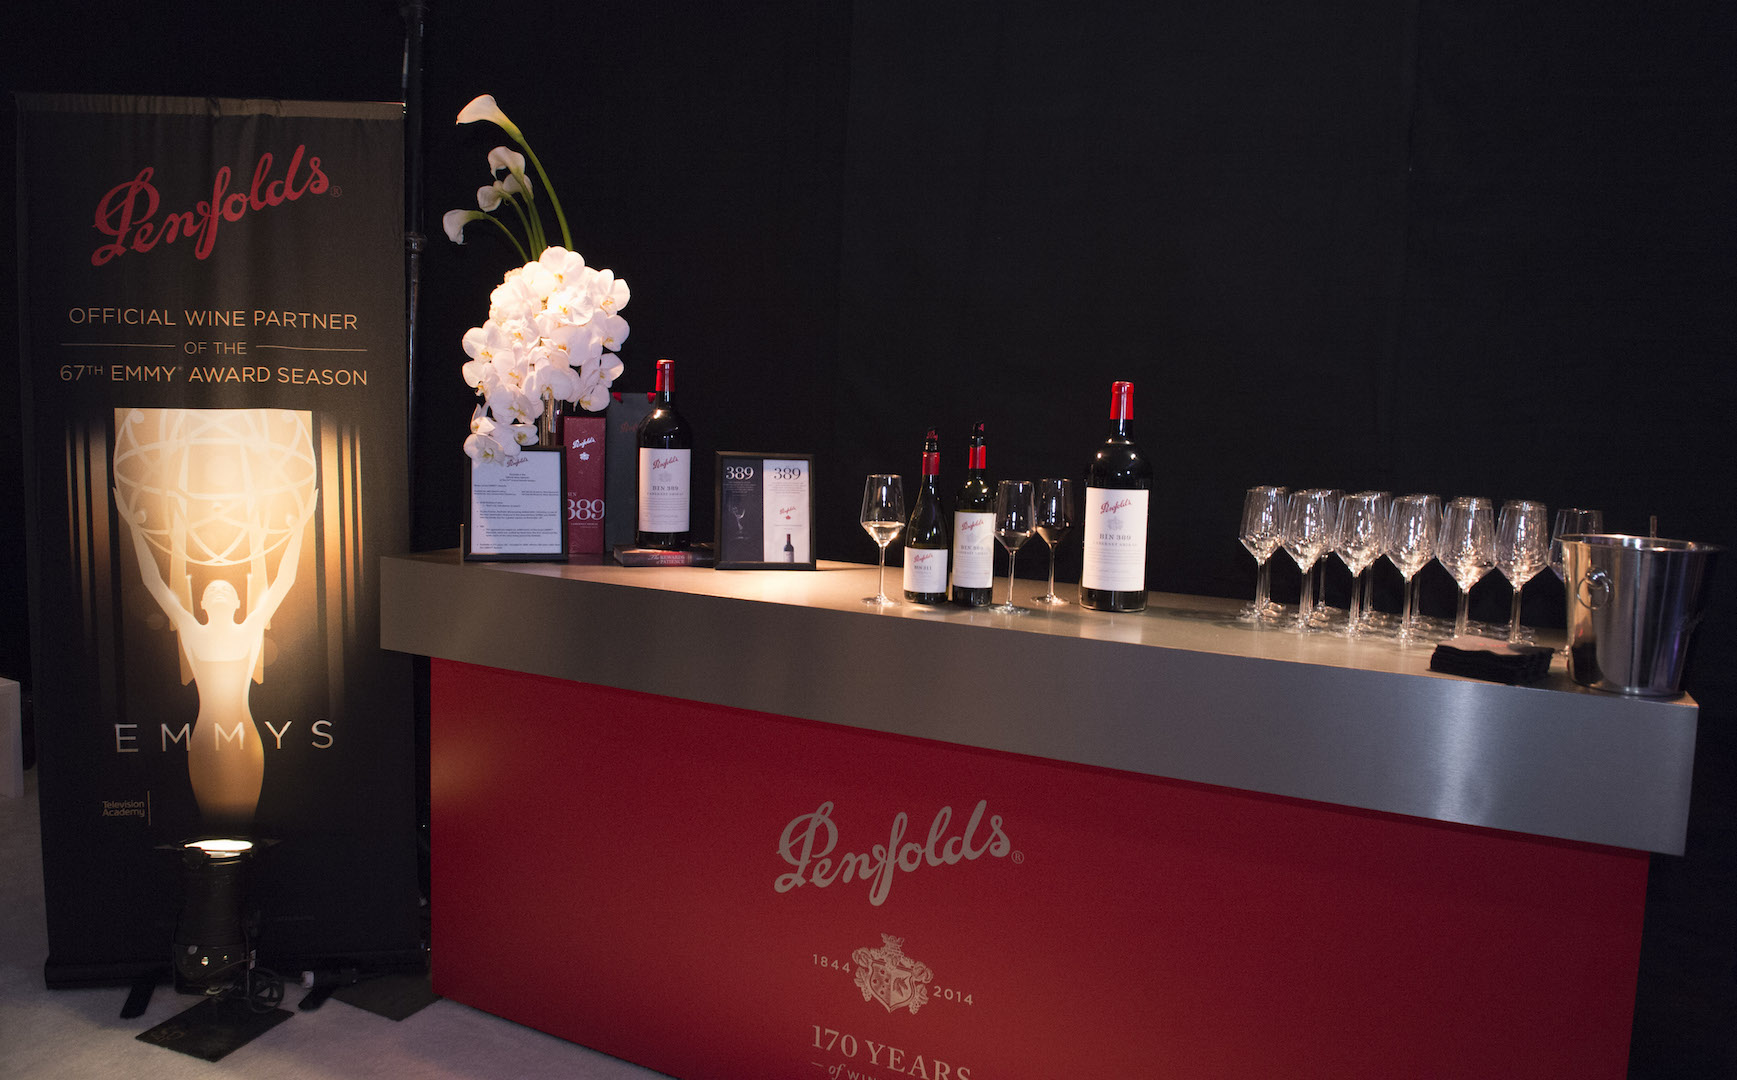 Penfolds display seen at 67th Emmy Awards Governors Ball Preview at the Los Angeles Convention Center on Wednesday, September 9, 2015, in Los Angeles, California. (Photo by Phil McCarten/Invision for Academy of Television Arts and Sciences/AP Images)